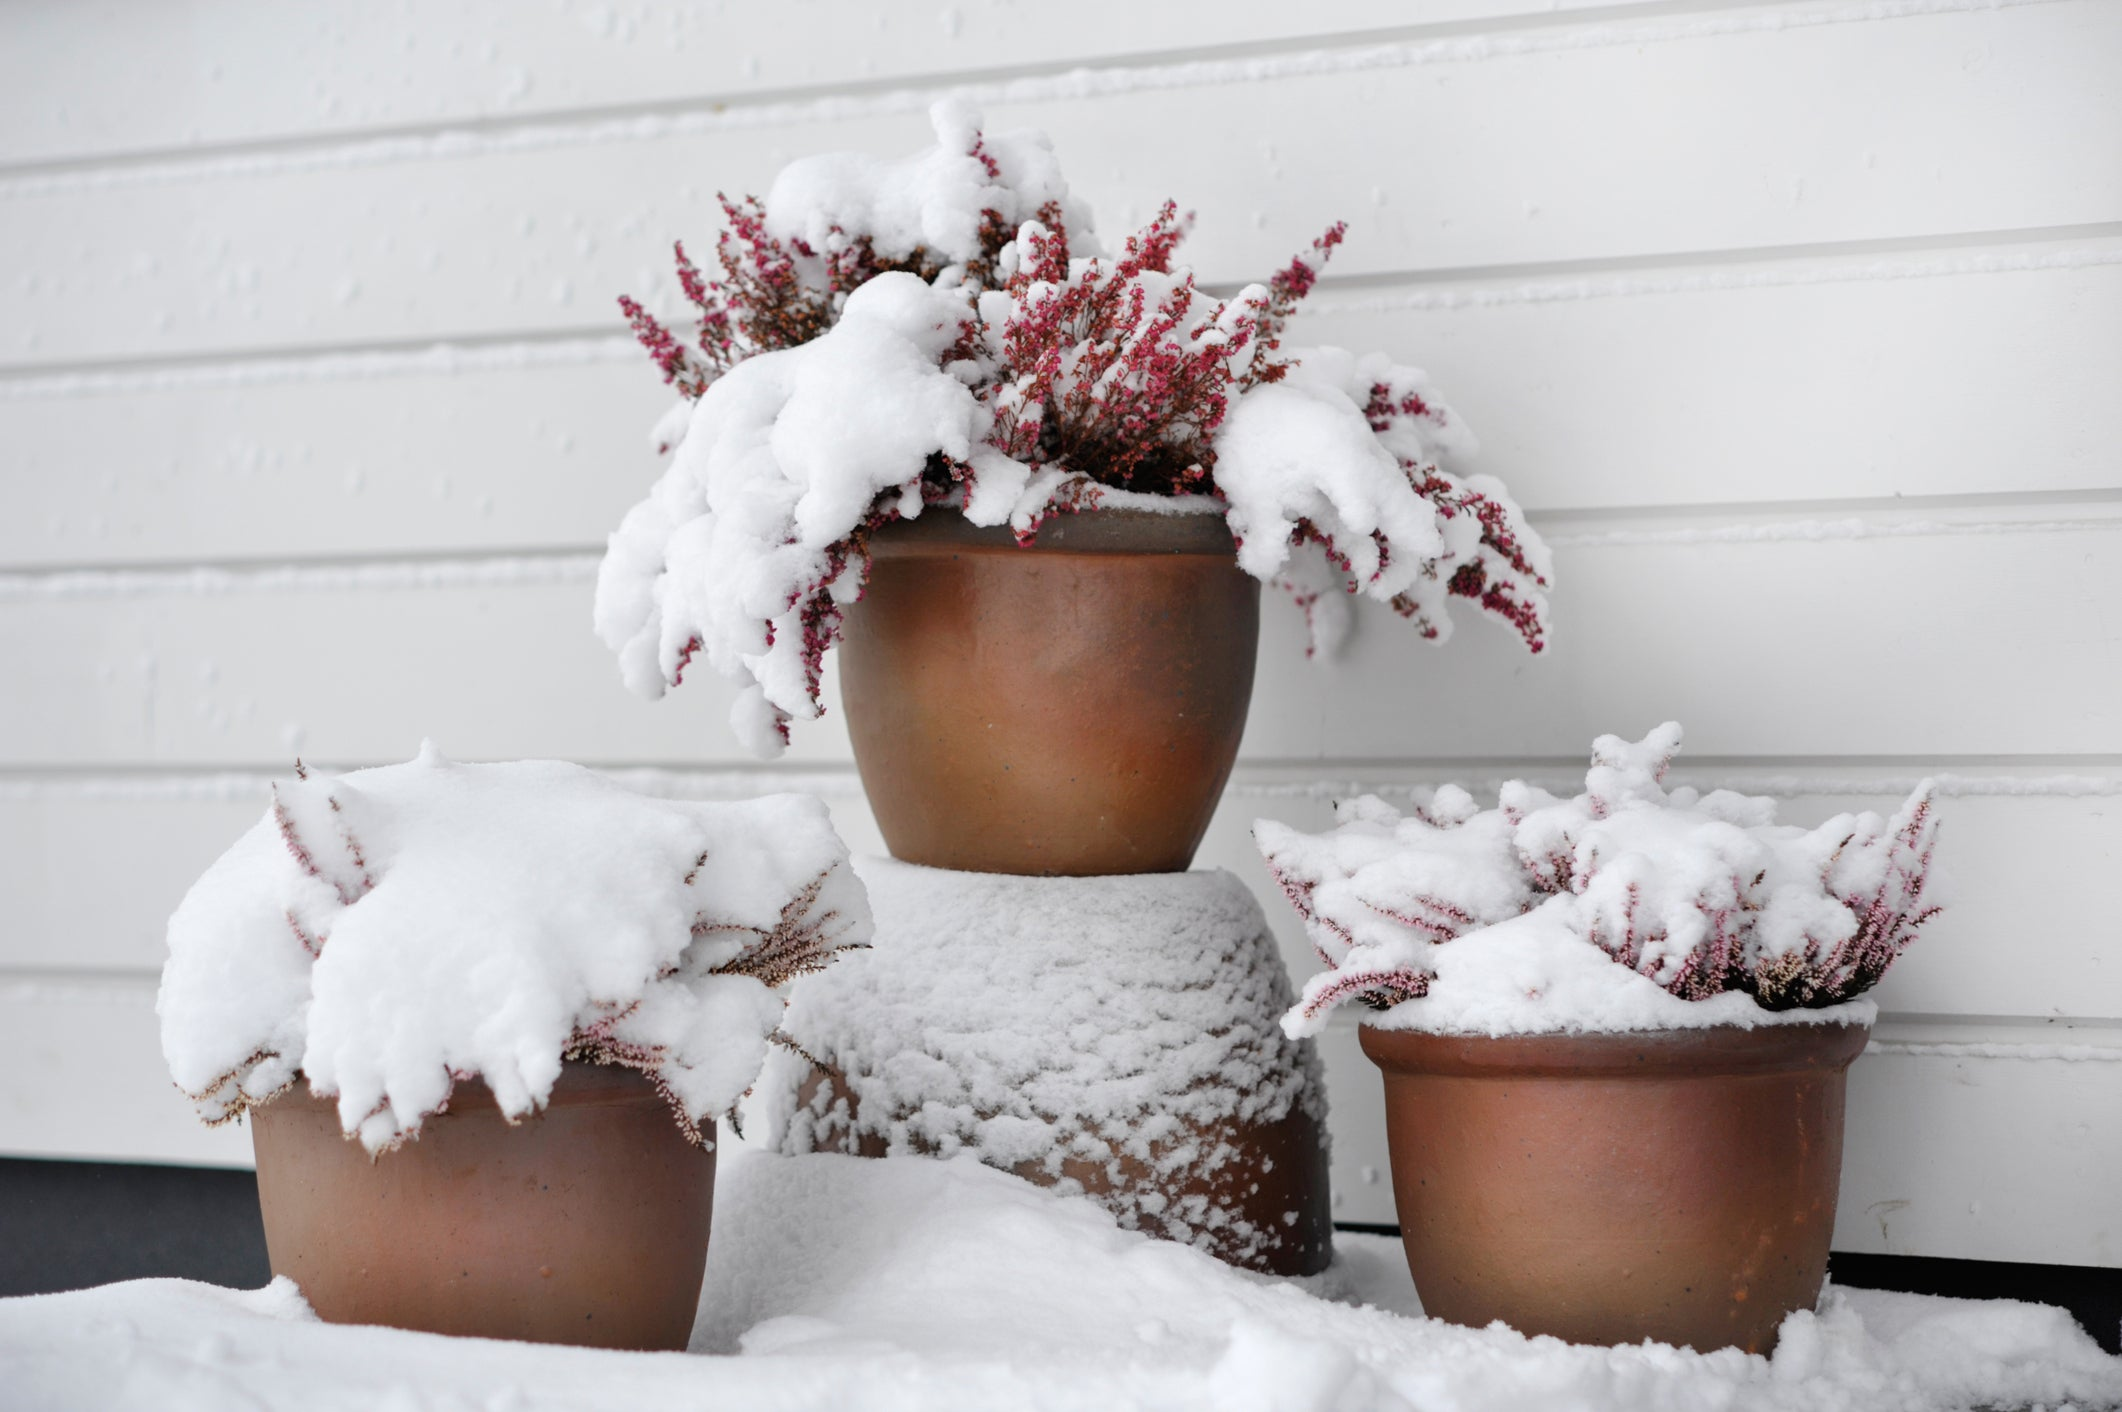 Potted plants covered in snow